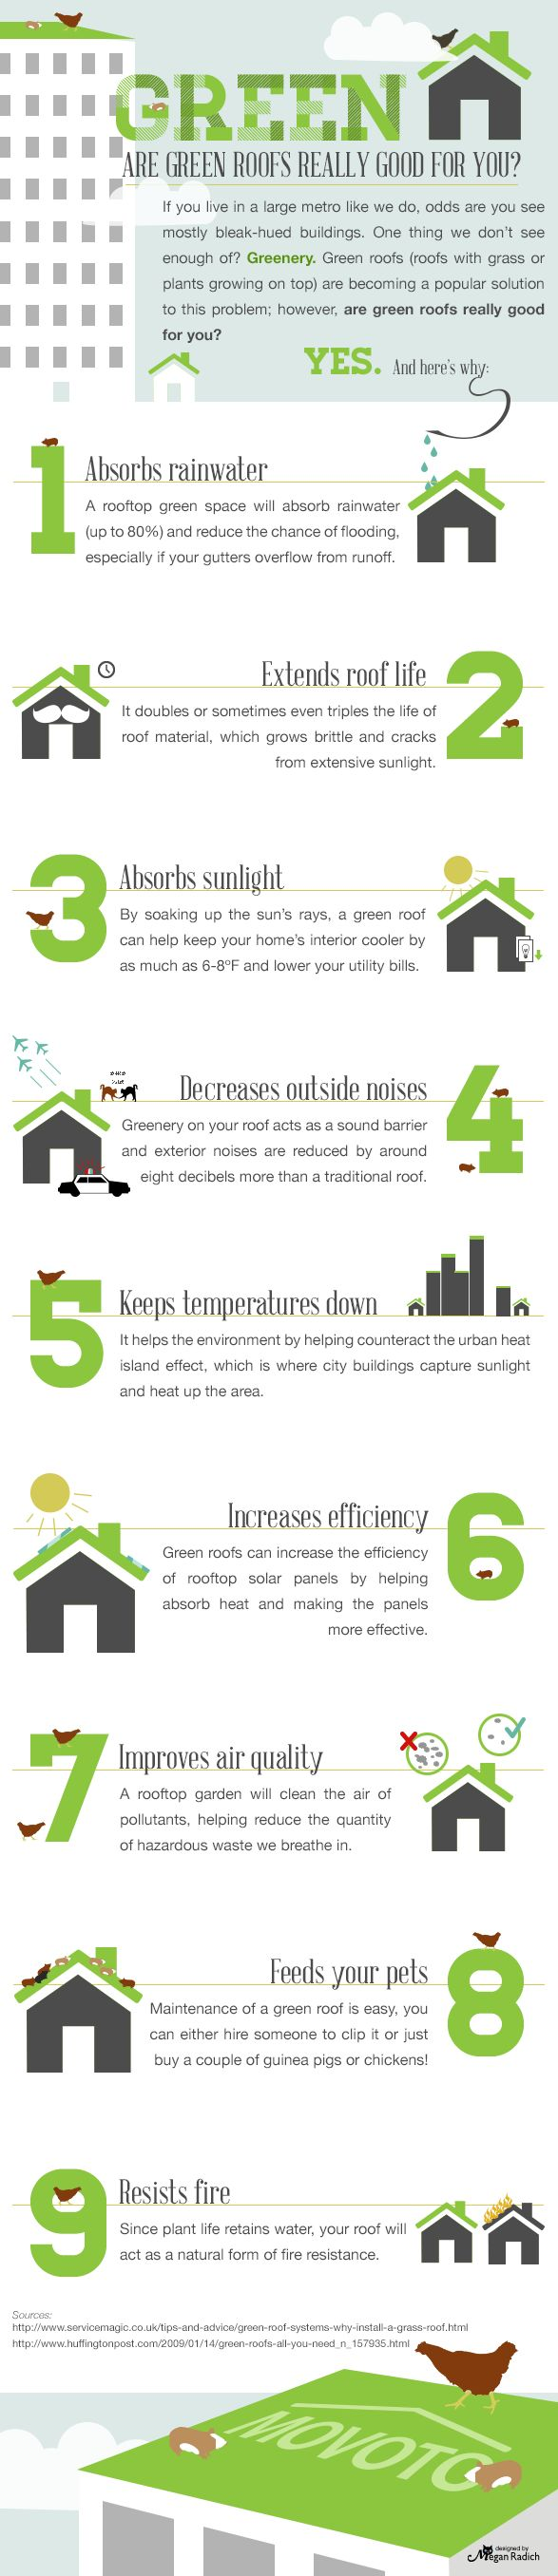 Are Green Roofs Really Good For You? [Infographic]